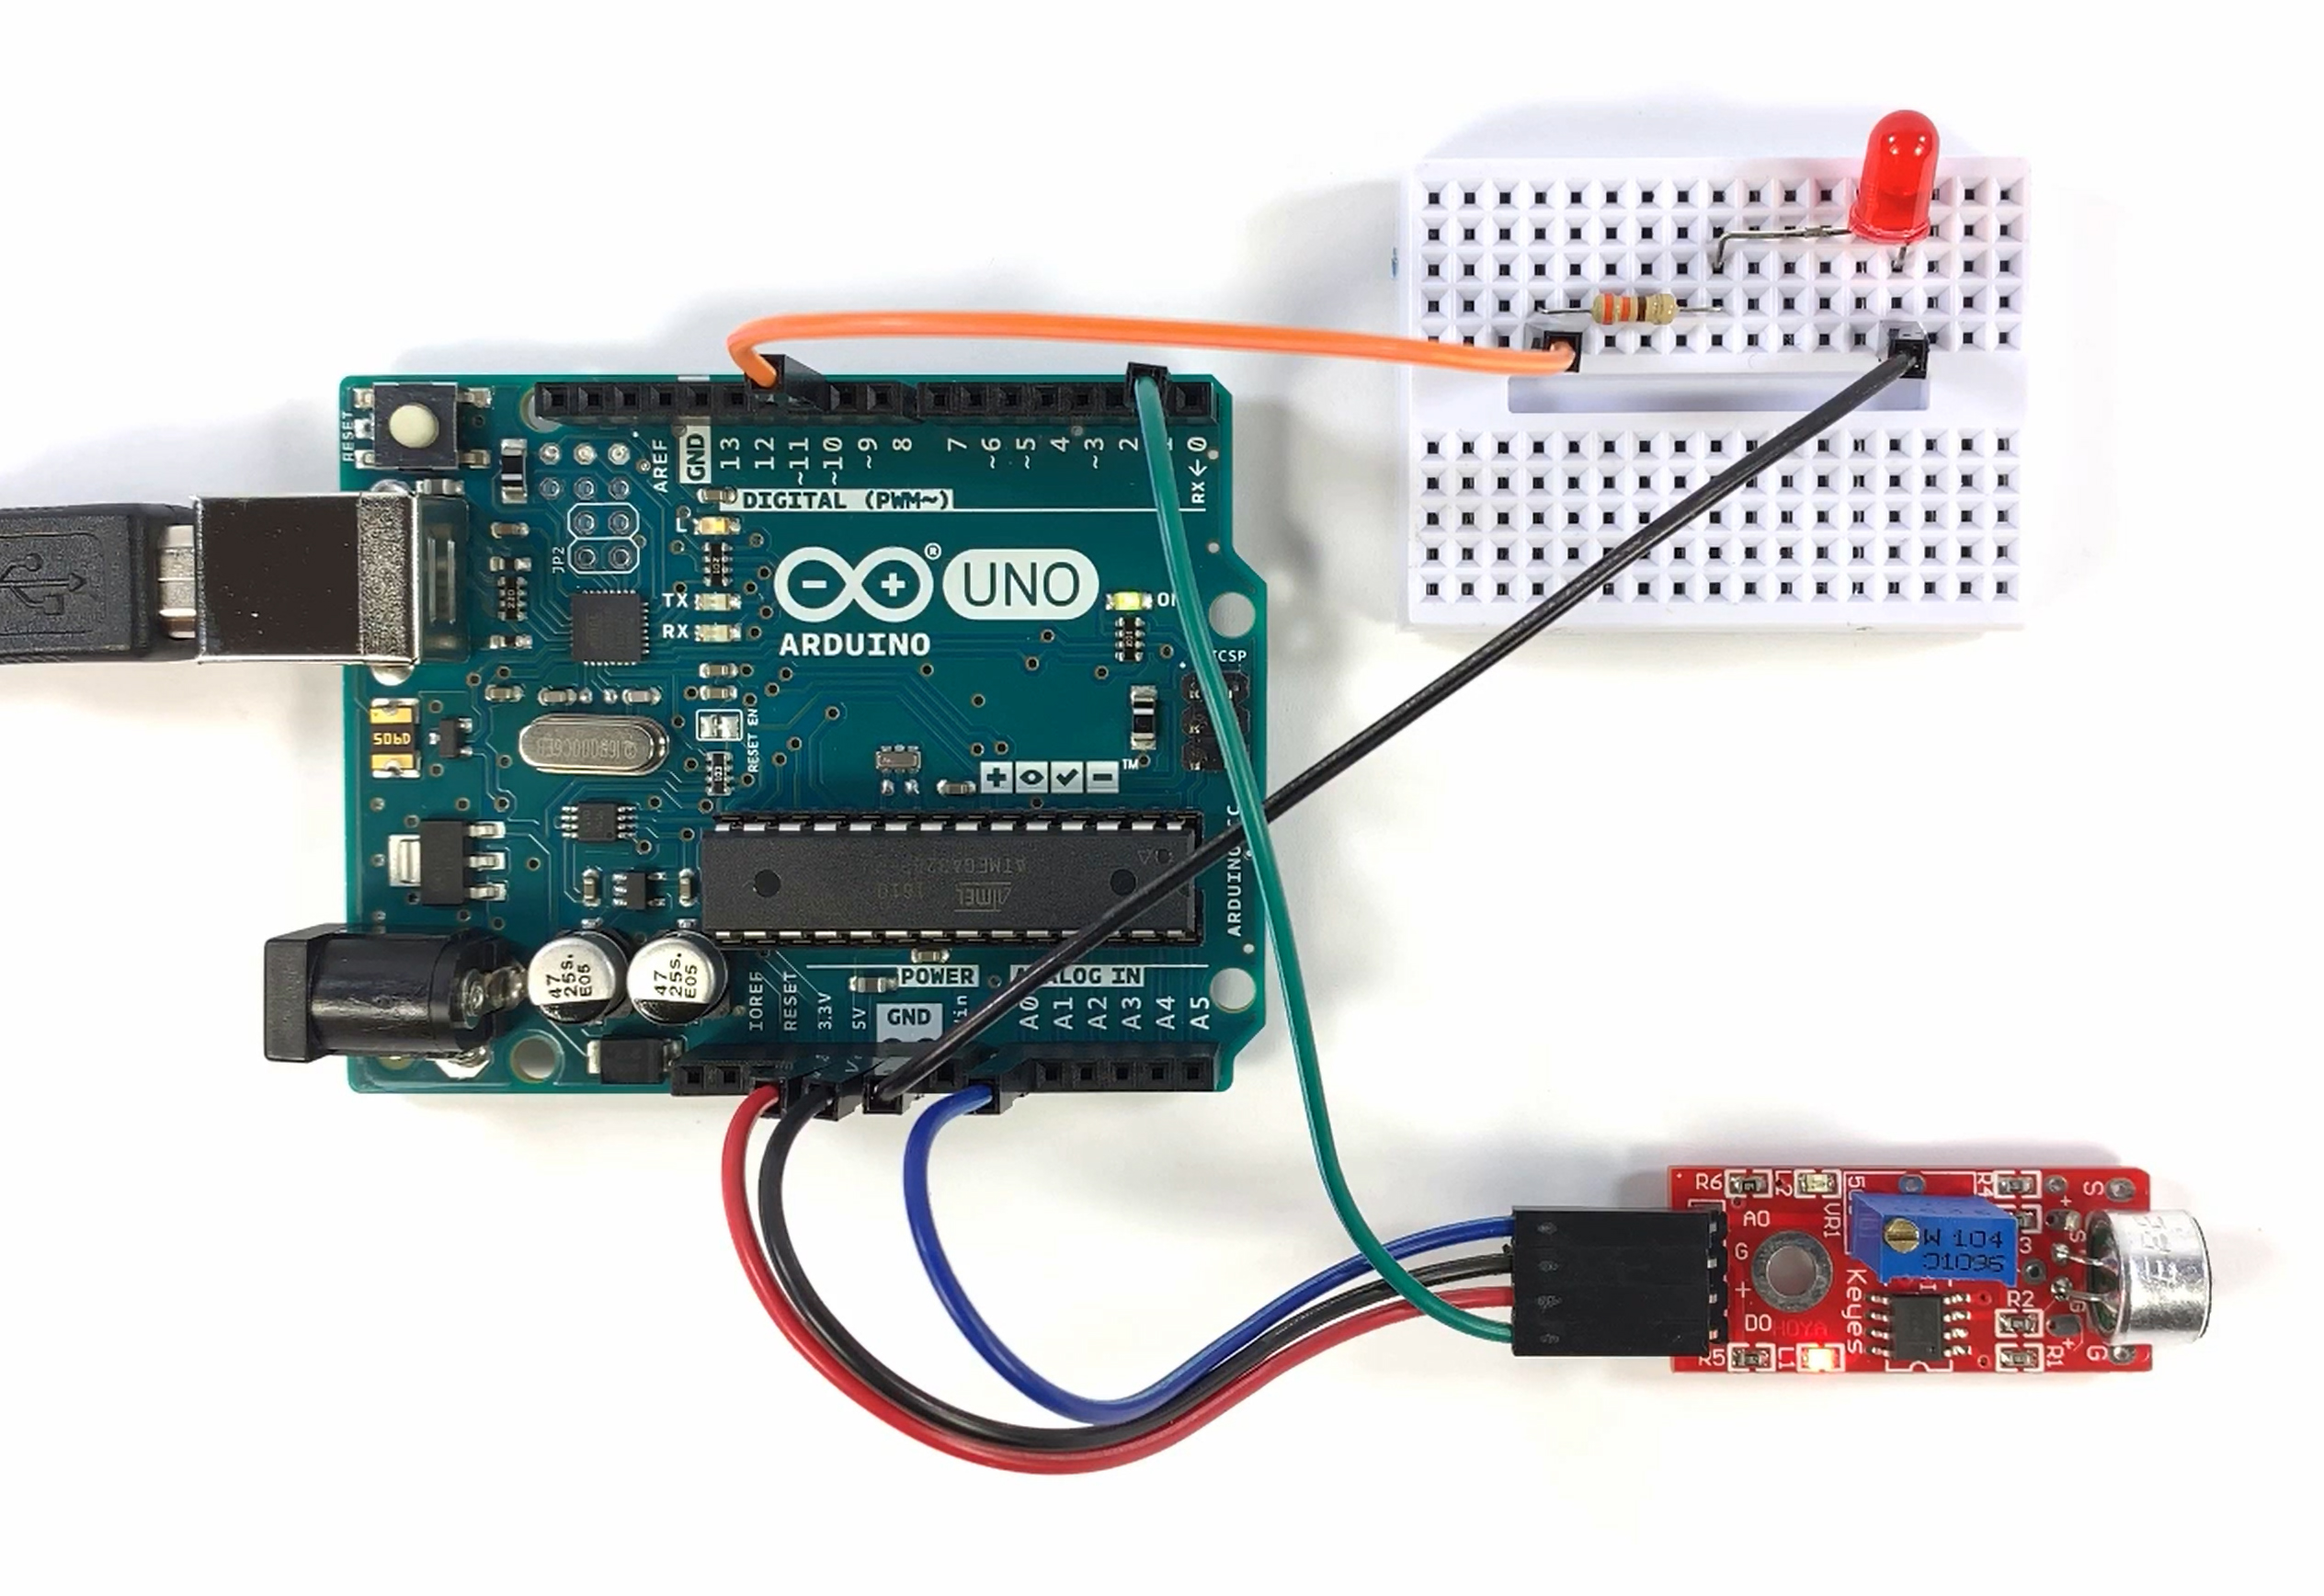 How to Use Microphones on the Arduino